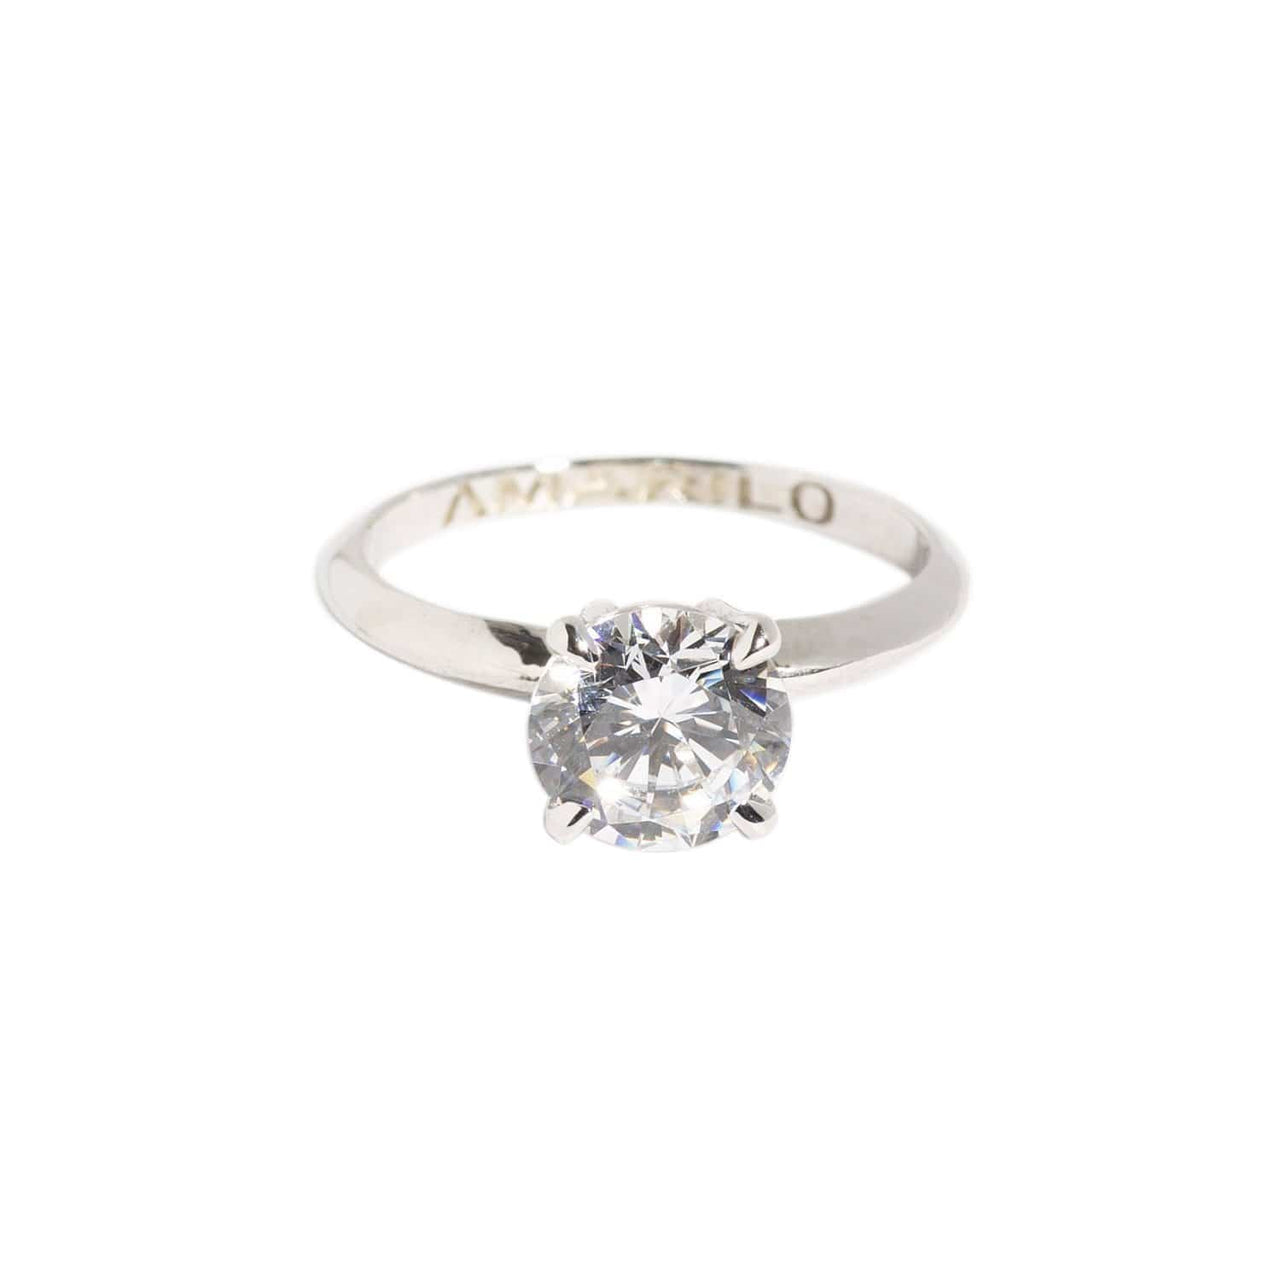 AMARILO Rings Classic Round Solitaire Ring